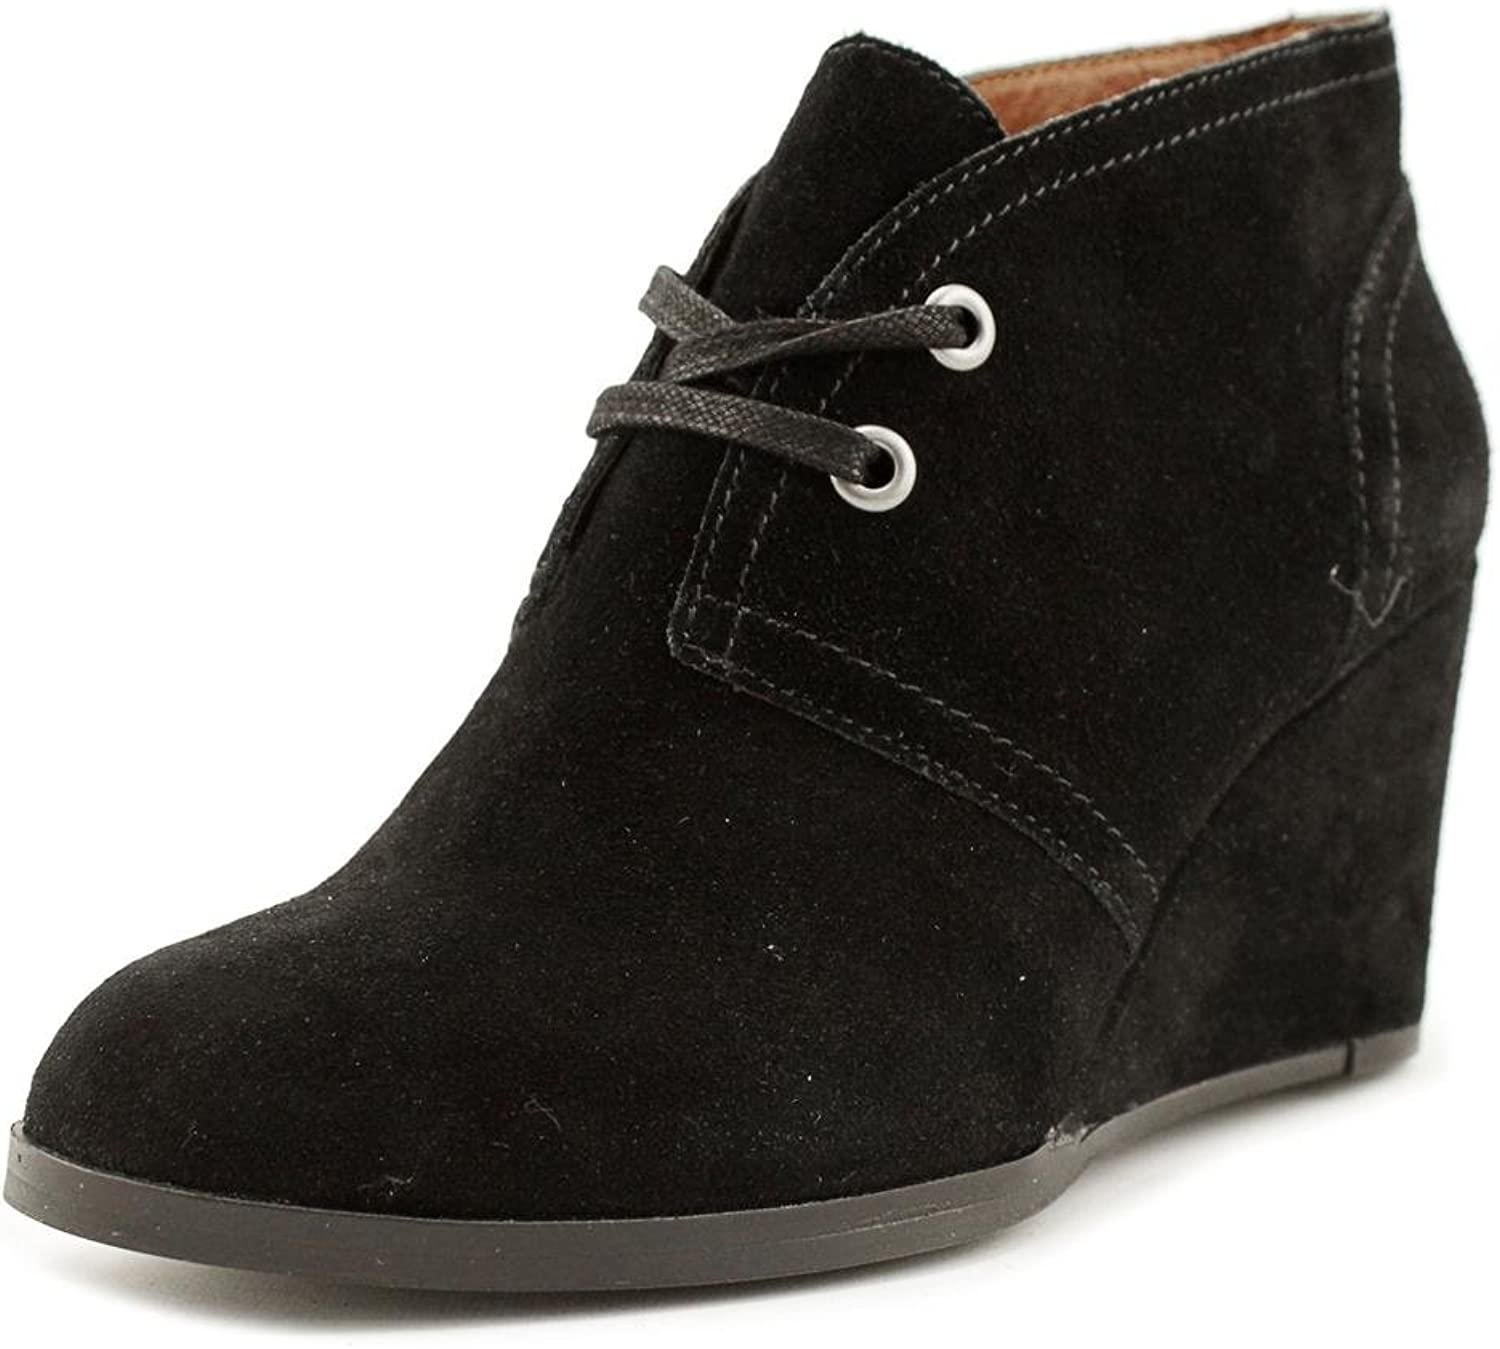 Lucky Brand Seleste Women Round Toe Suede Black Ankle Boot, Black, Size 7.0